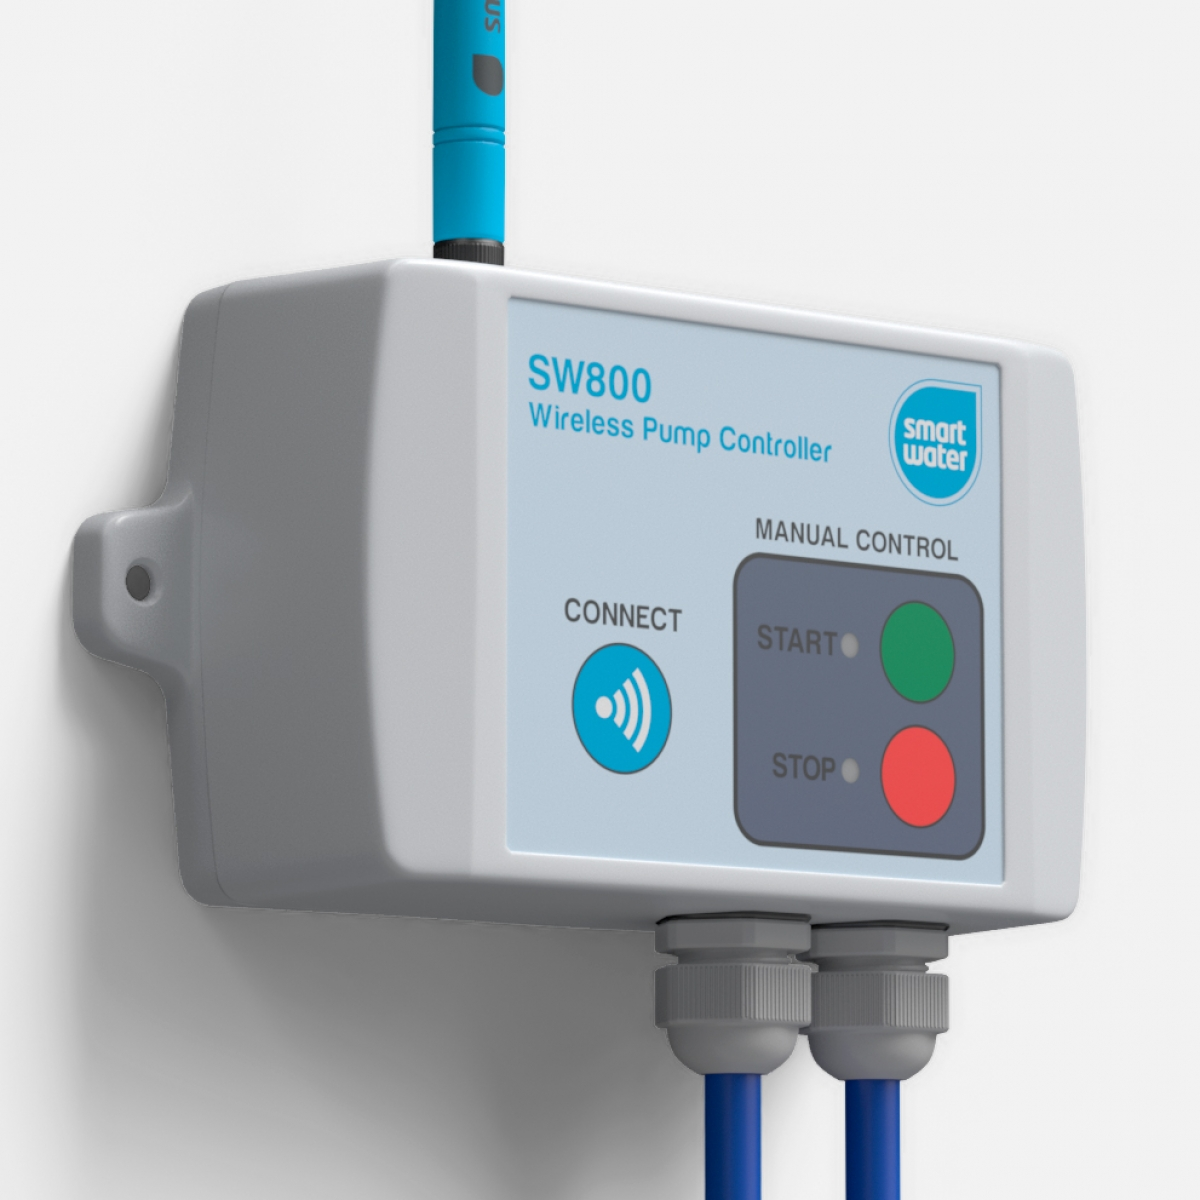 SW800 Wireless Pump Controller (12VDC) 6